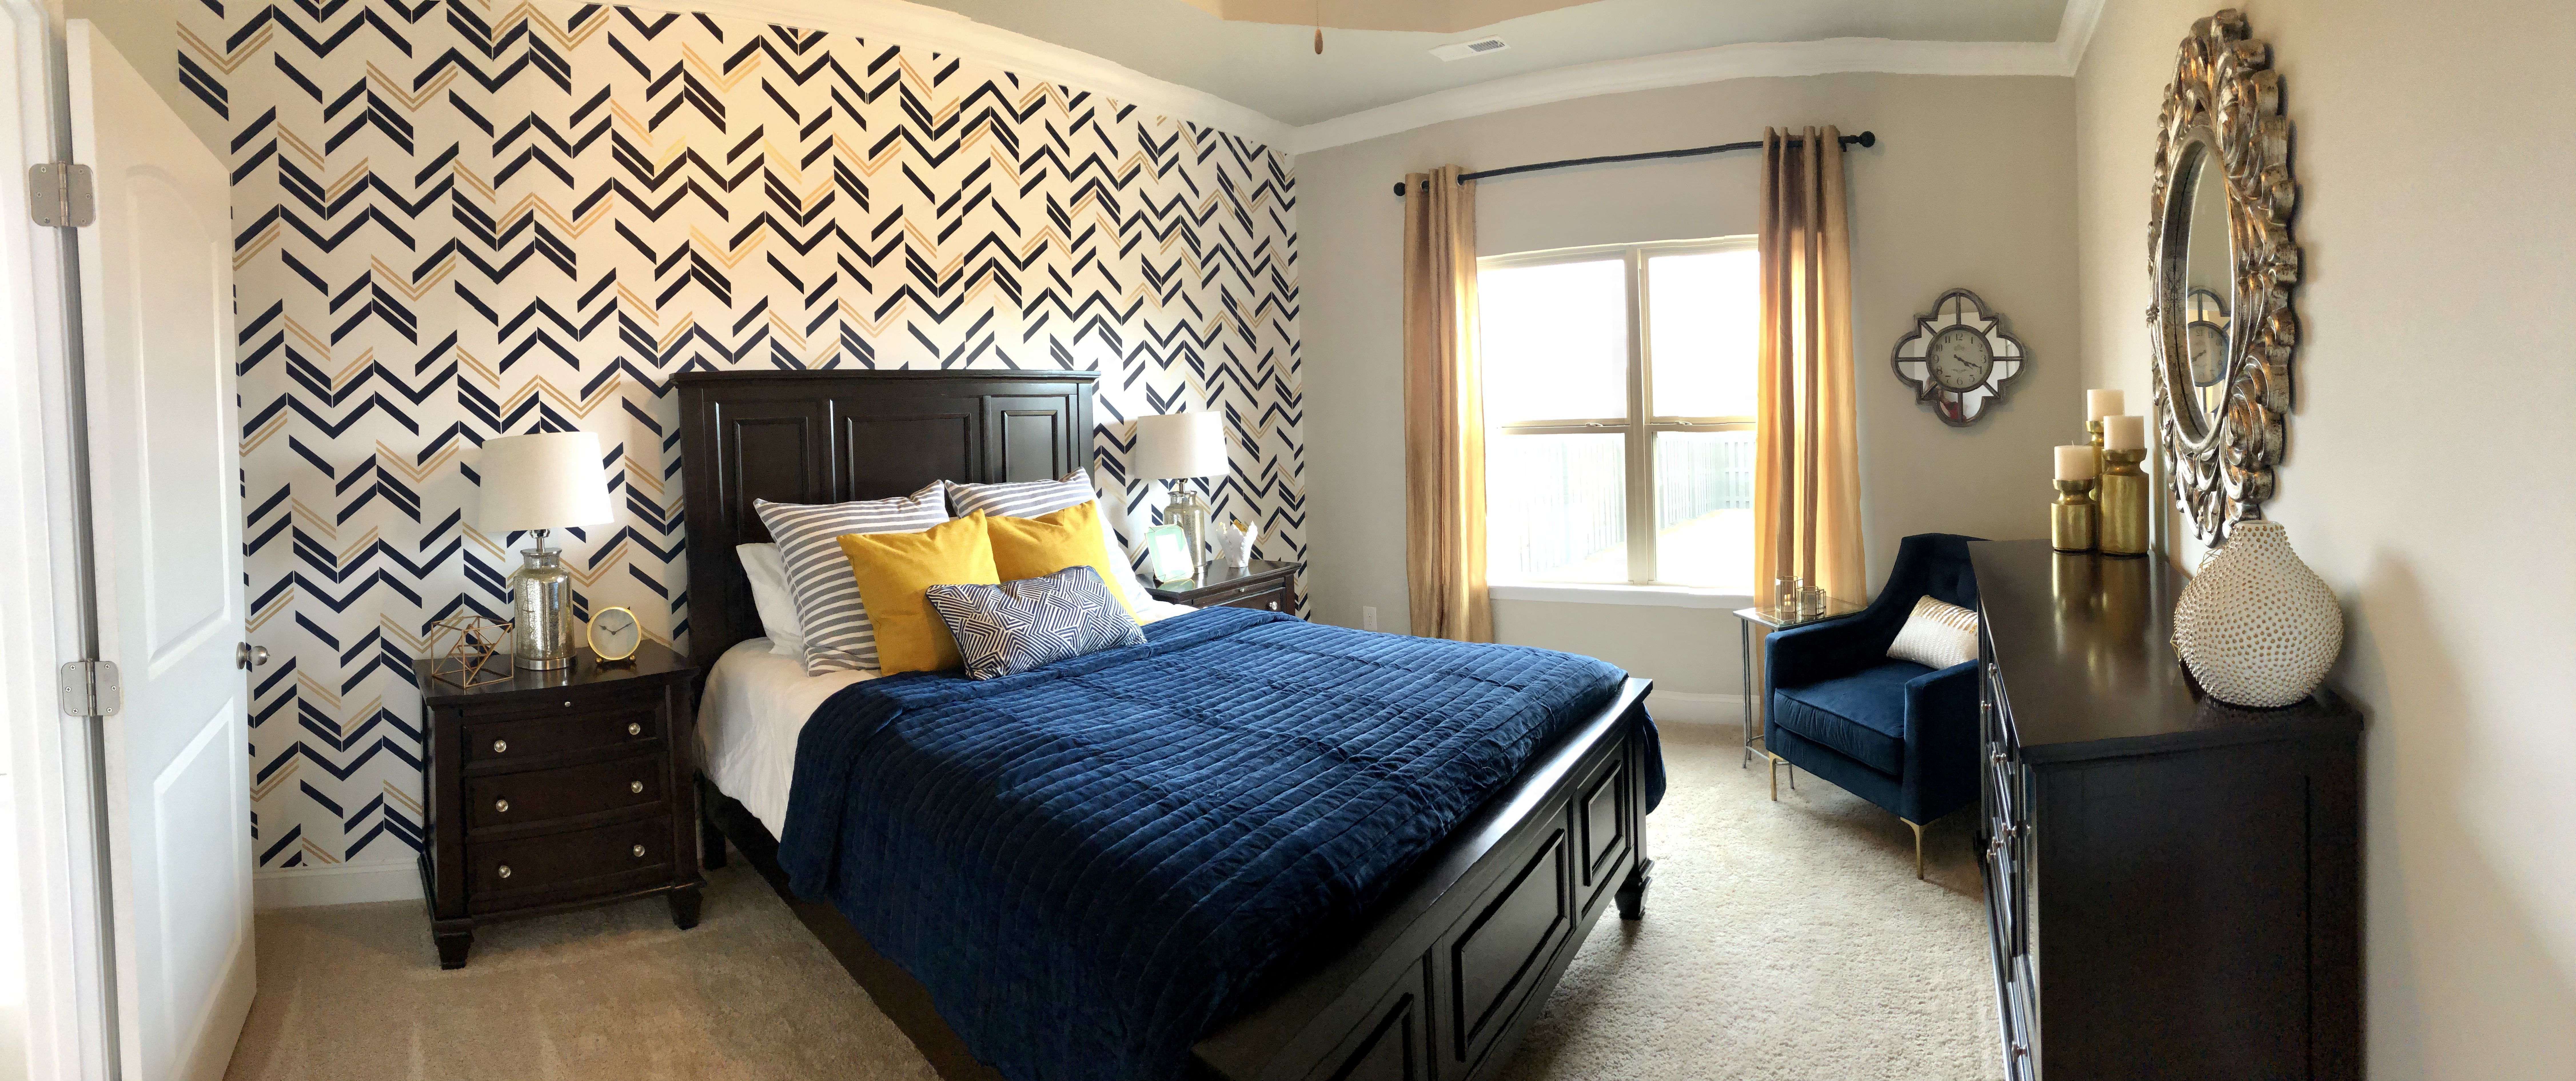 Funky and bright master bedroom with navy and white